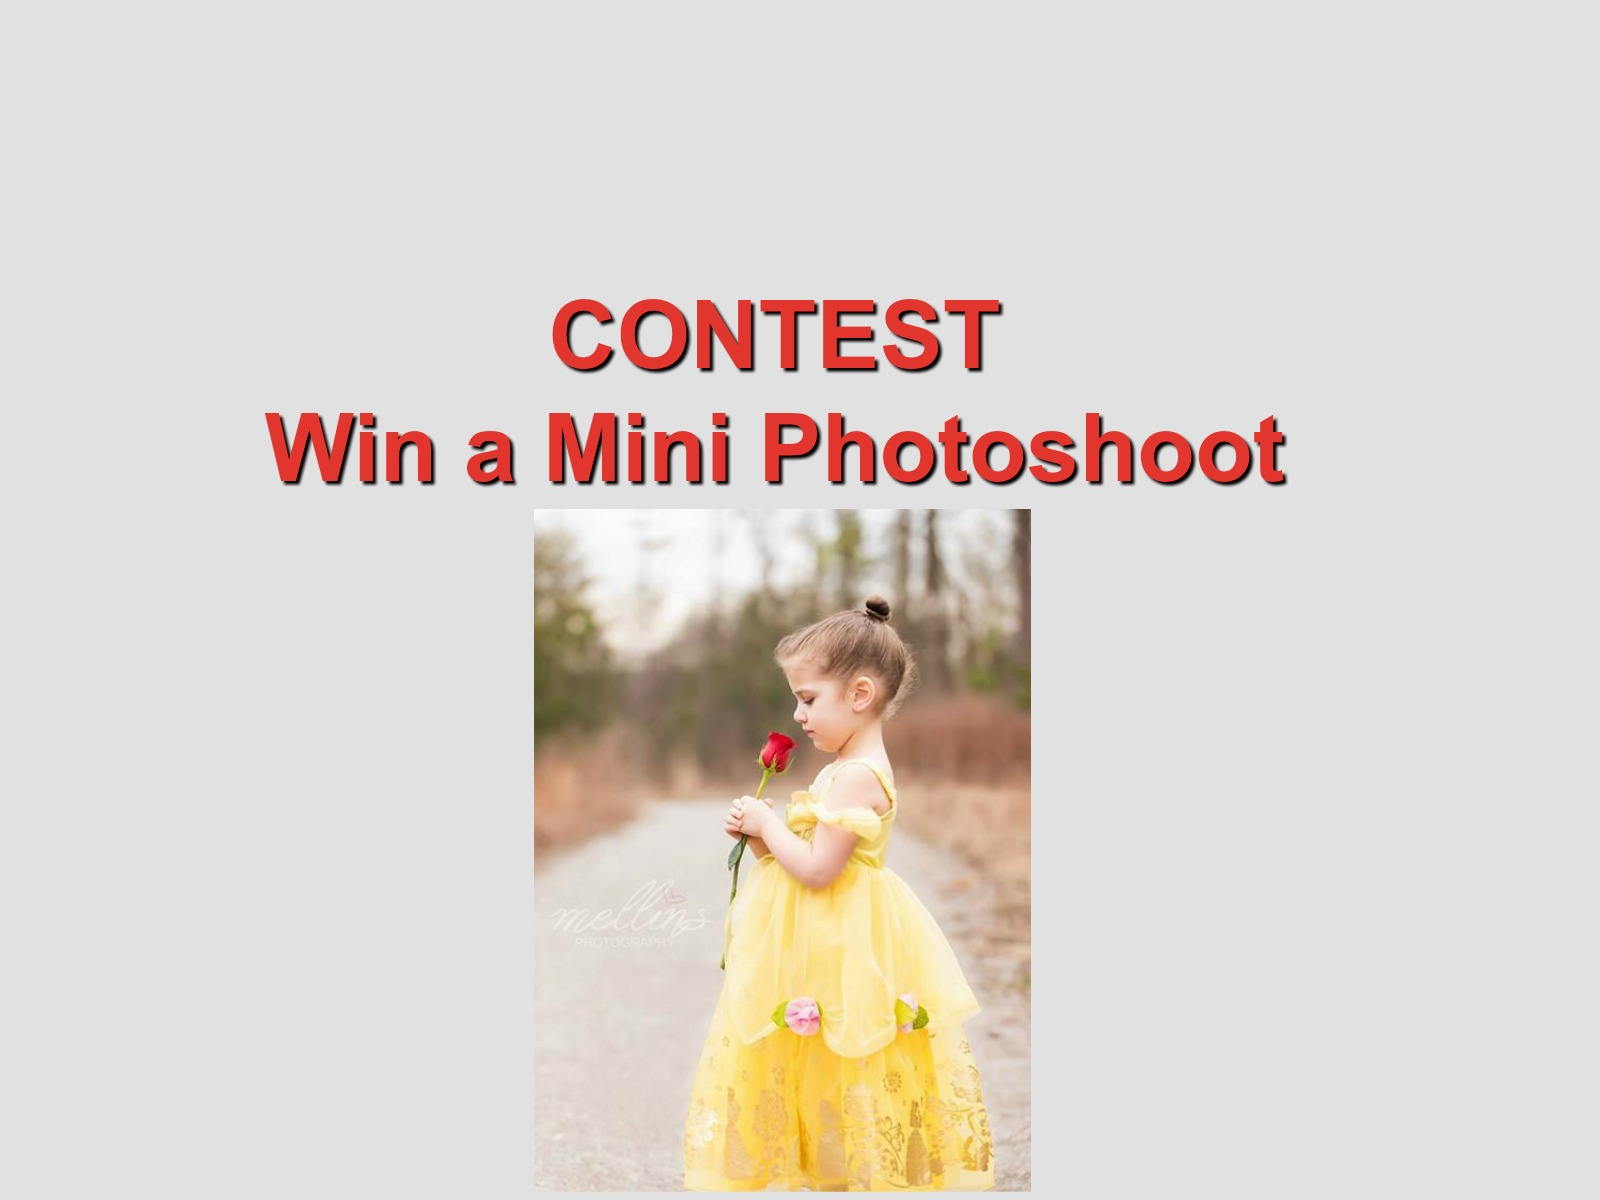 CONTEST: Win A Mini Photo Shoot